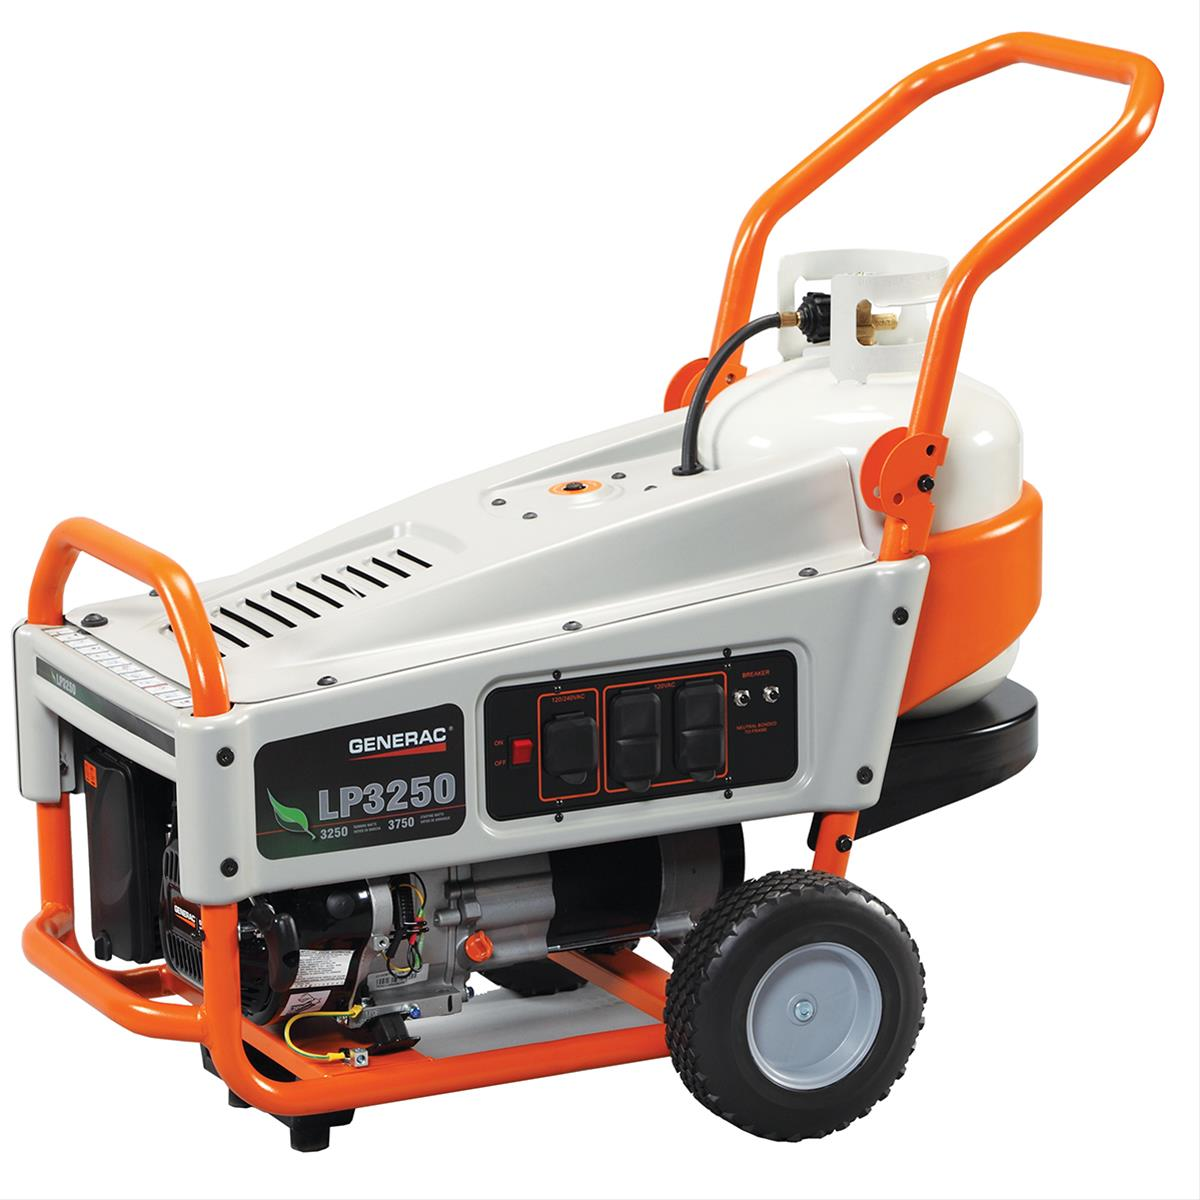 Generac LP Series Portable Propane Generators 6000 - Free Shipping